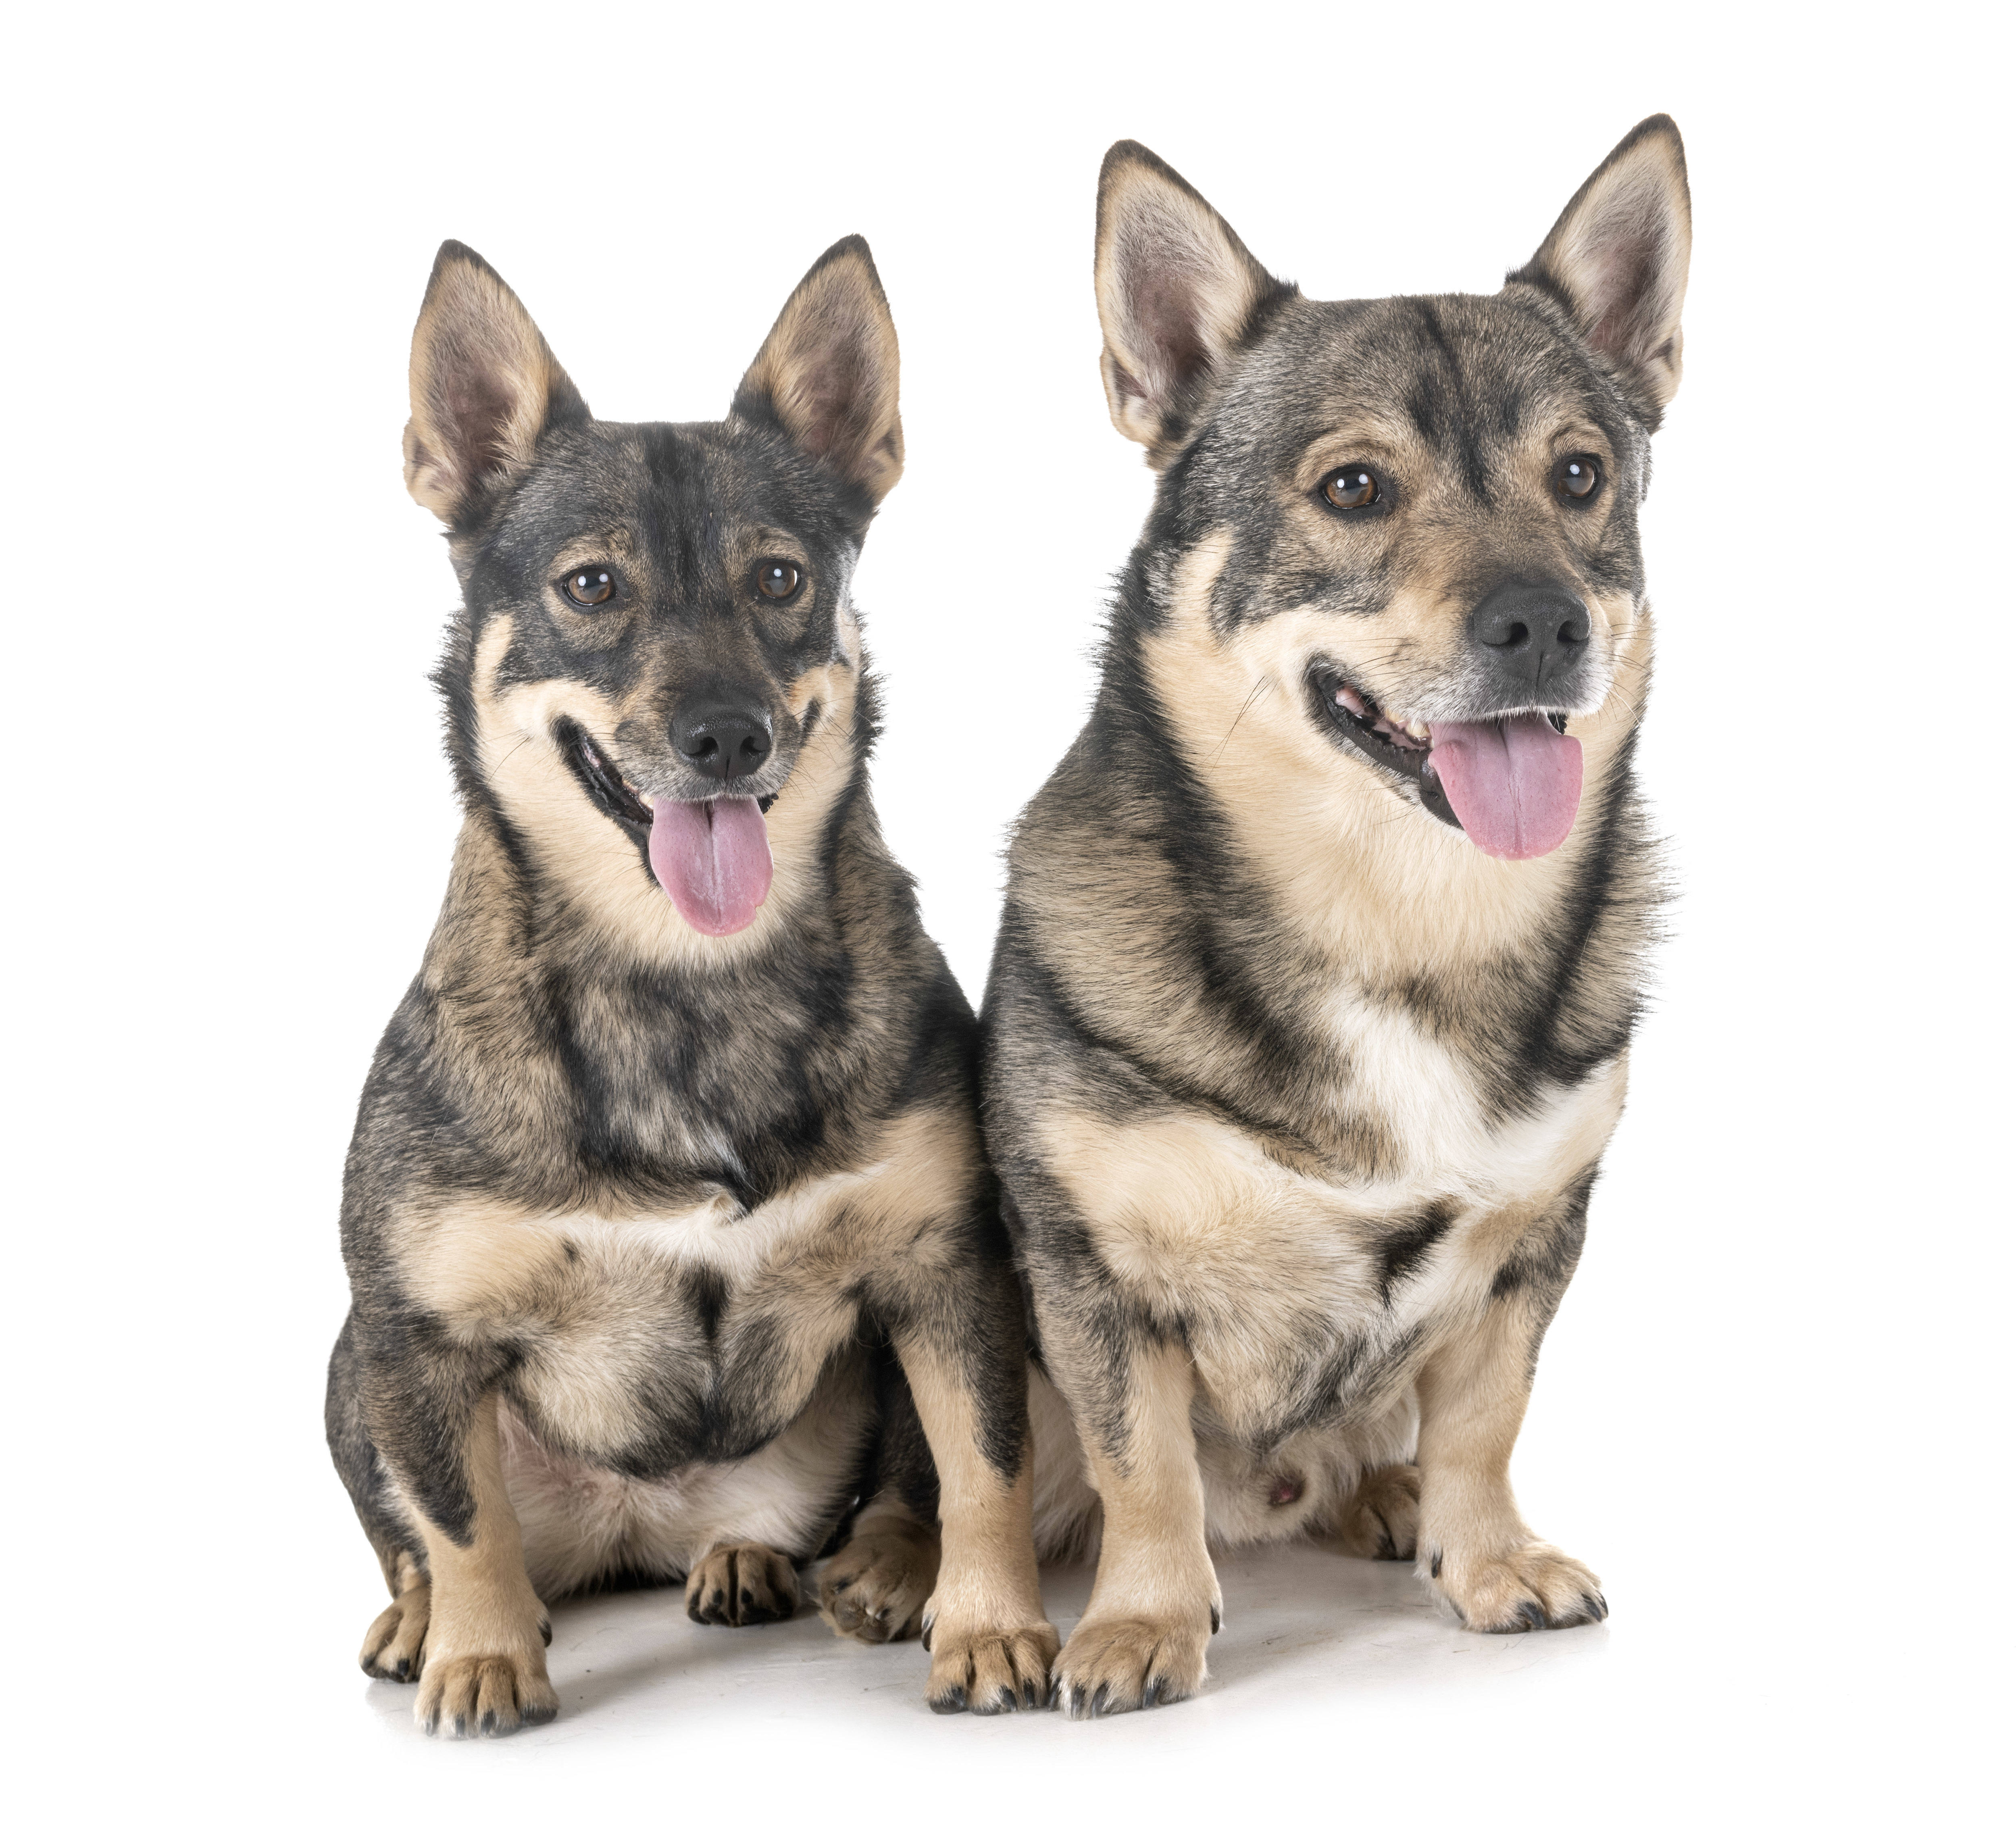 Two Swedish Vallhunds in front of white background